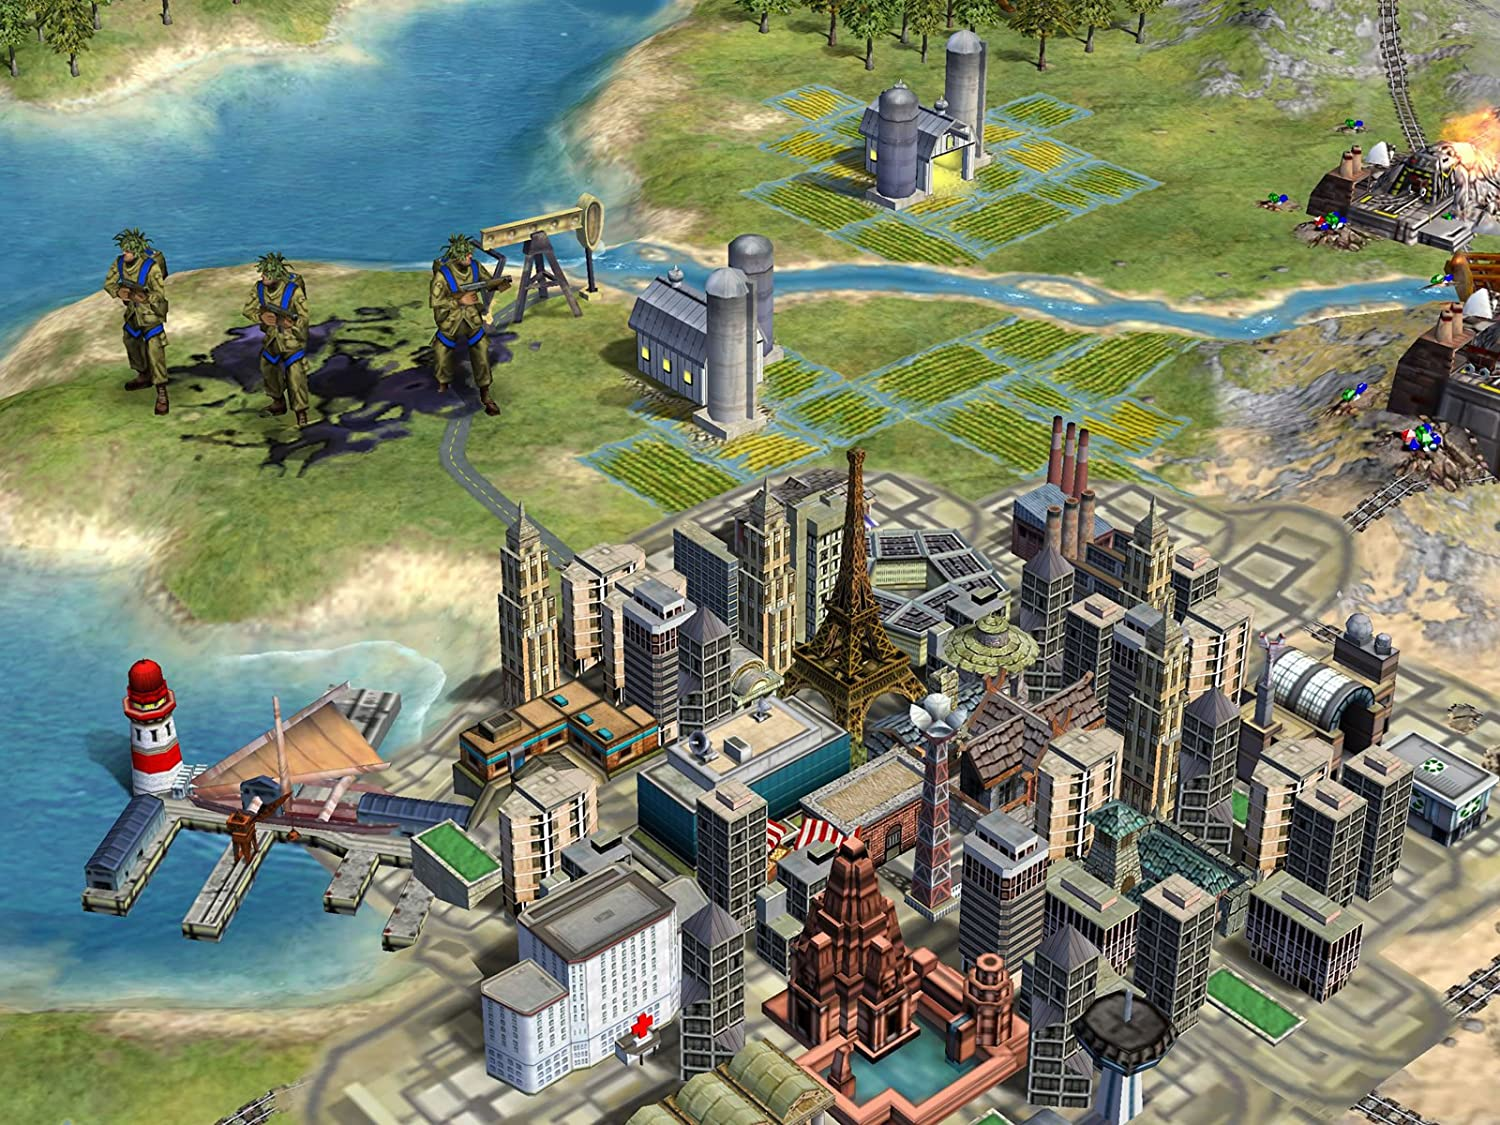 Sid Meiers Civilization Iv The Complete Edition Pc Download Plants Vs Zombies 2 Full Version Airport Luggage Trolley Video Games